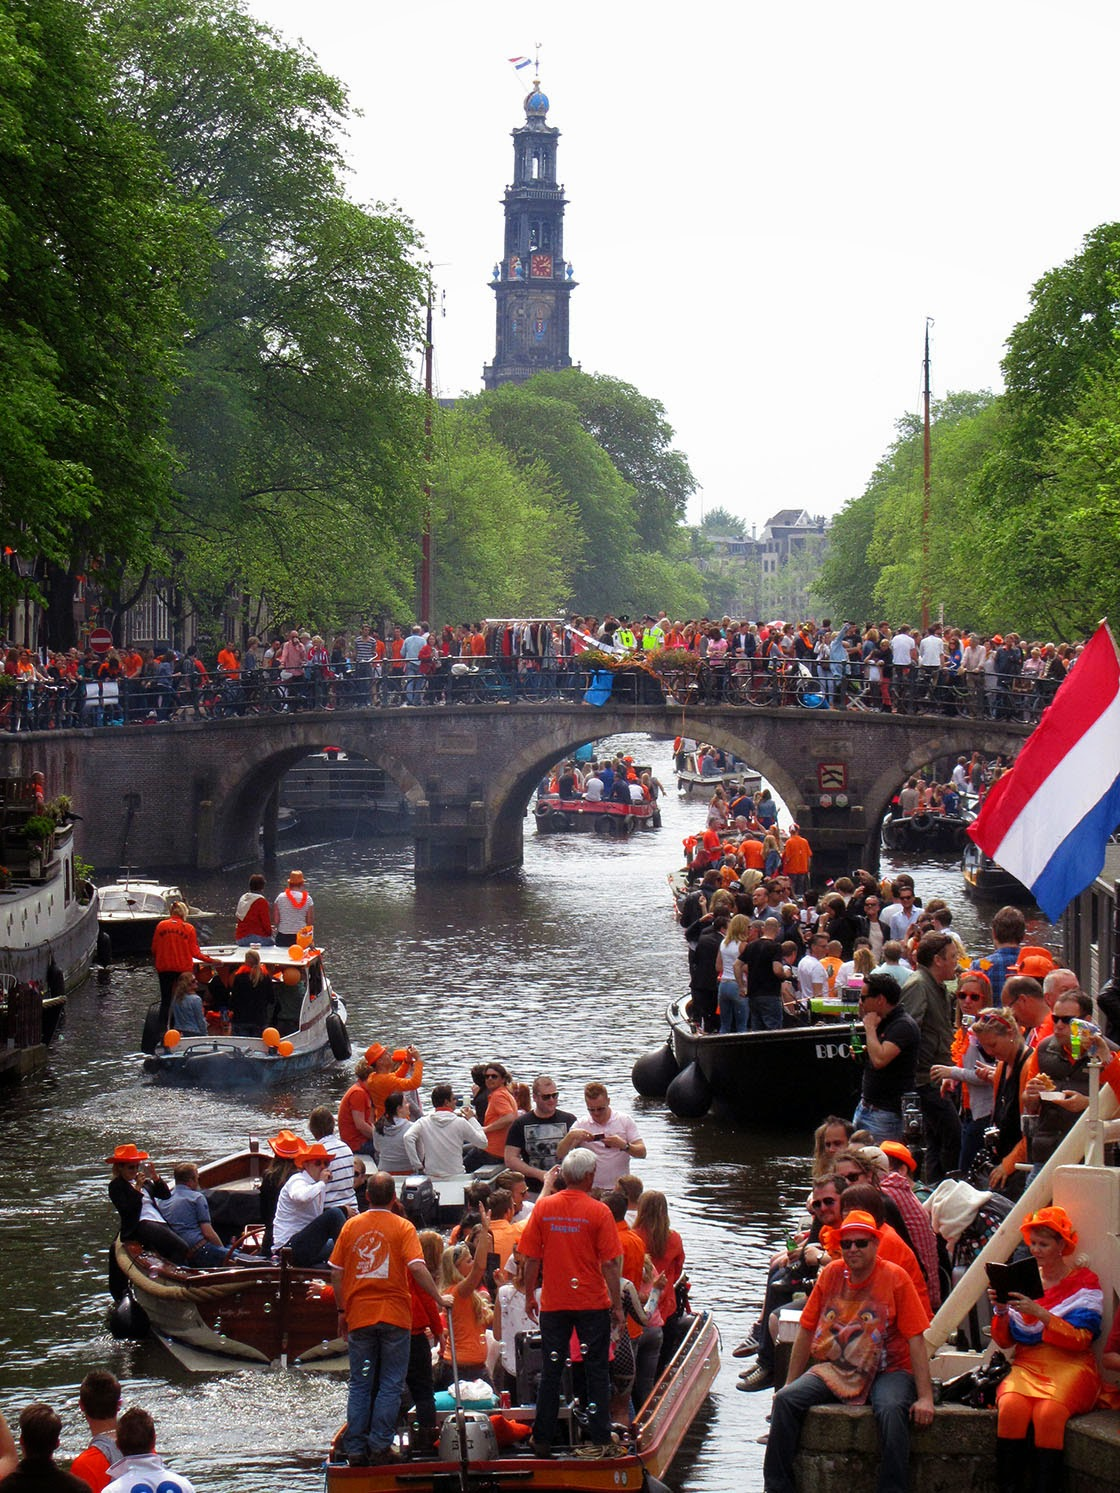 crowds on King's Day